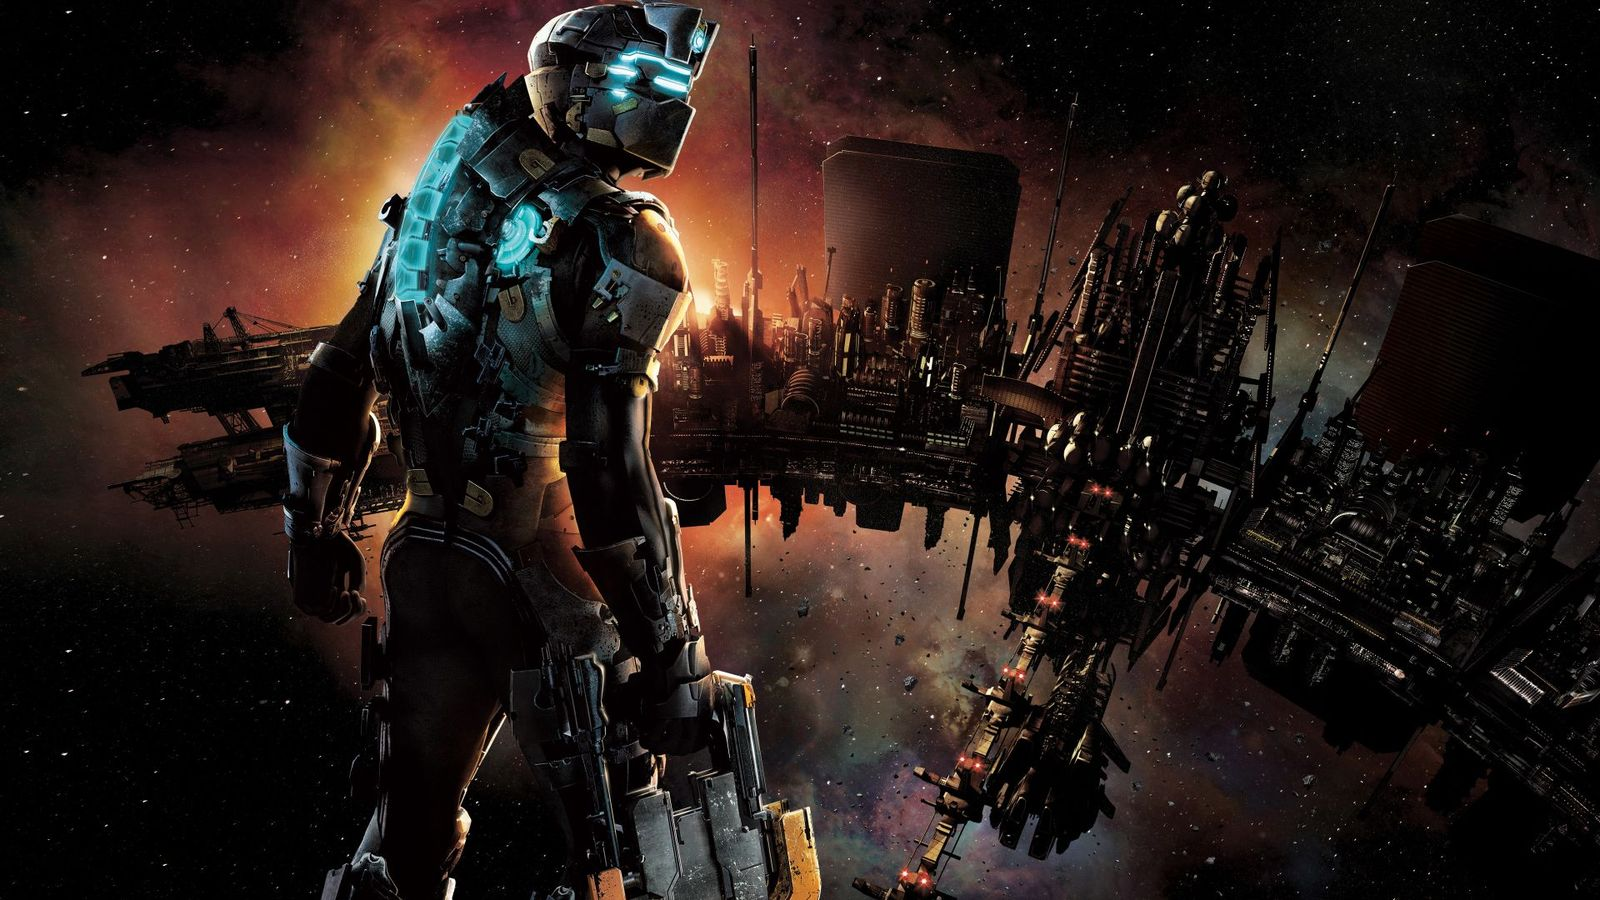 🌌 Origin Dead Space Account 🌌